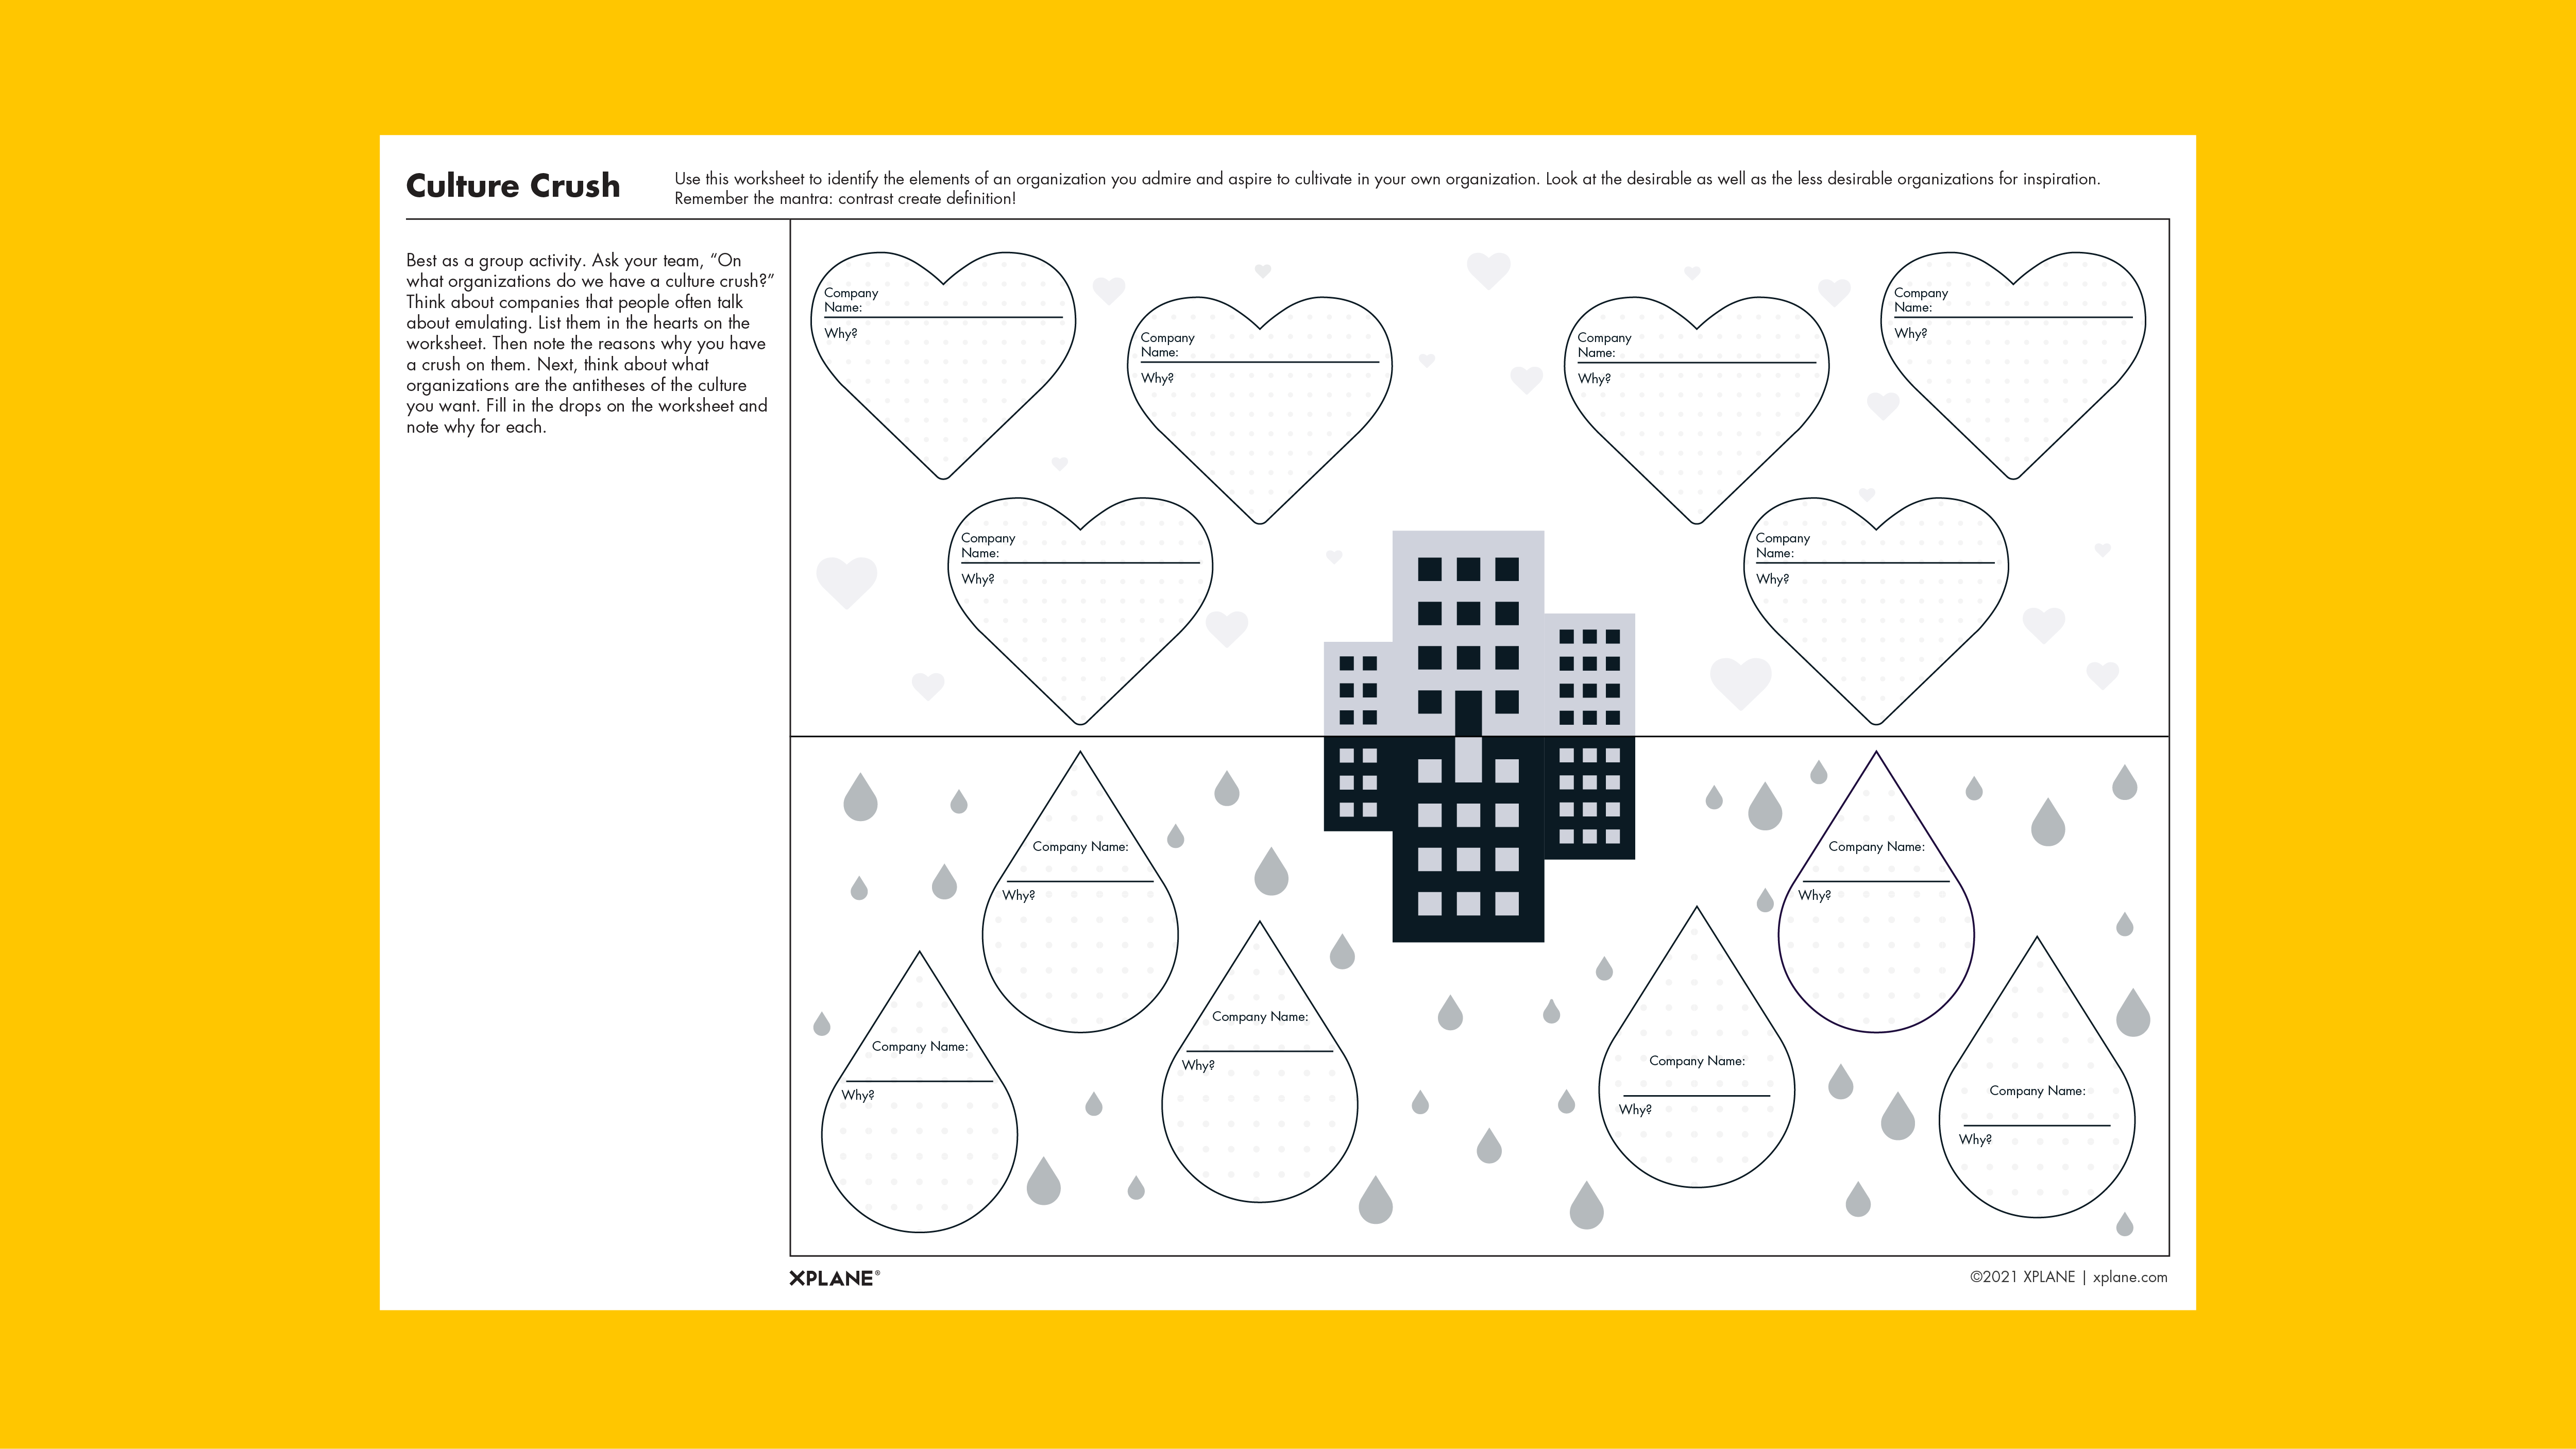 Culture Crush worksheet against yellow background